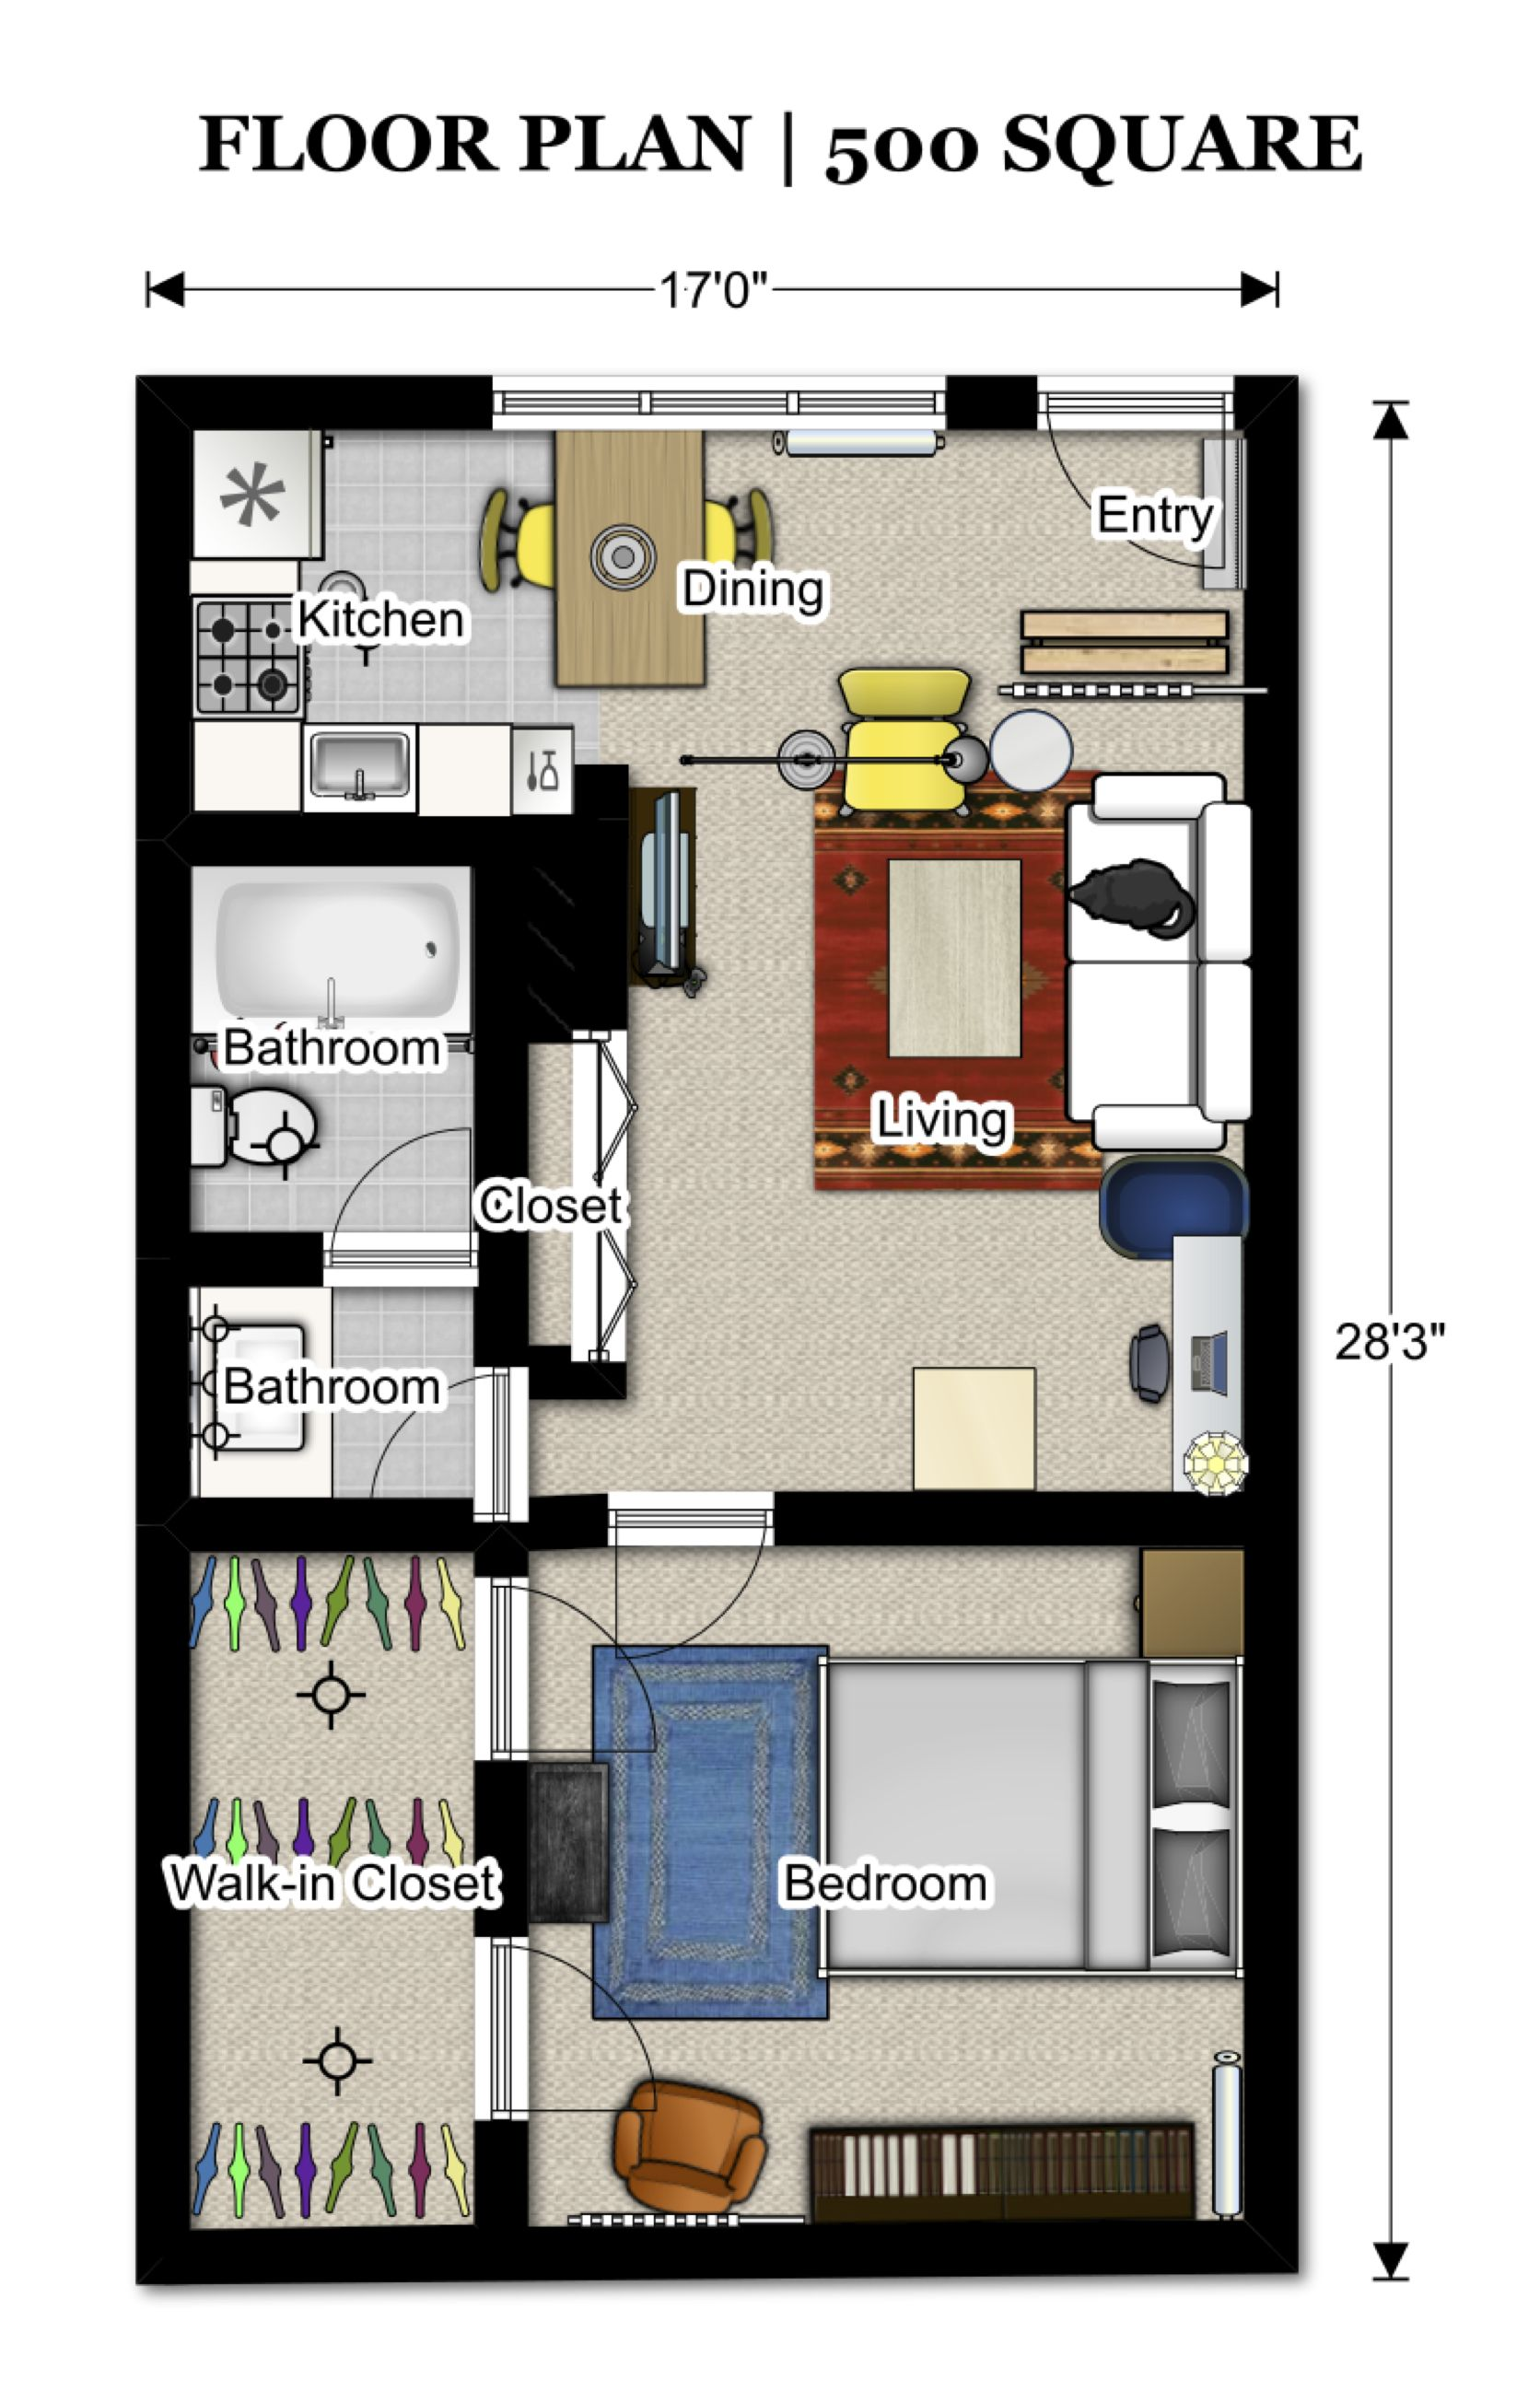 Ikea 500 Square Foot Apartment Google Search